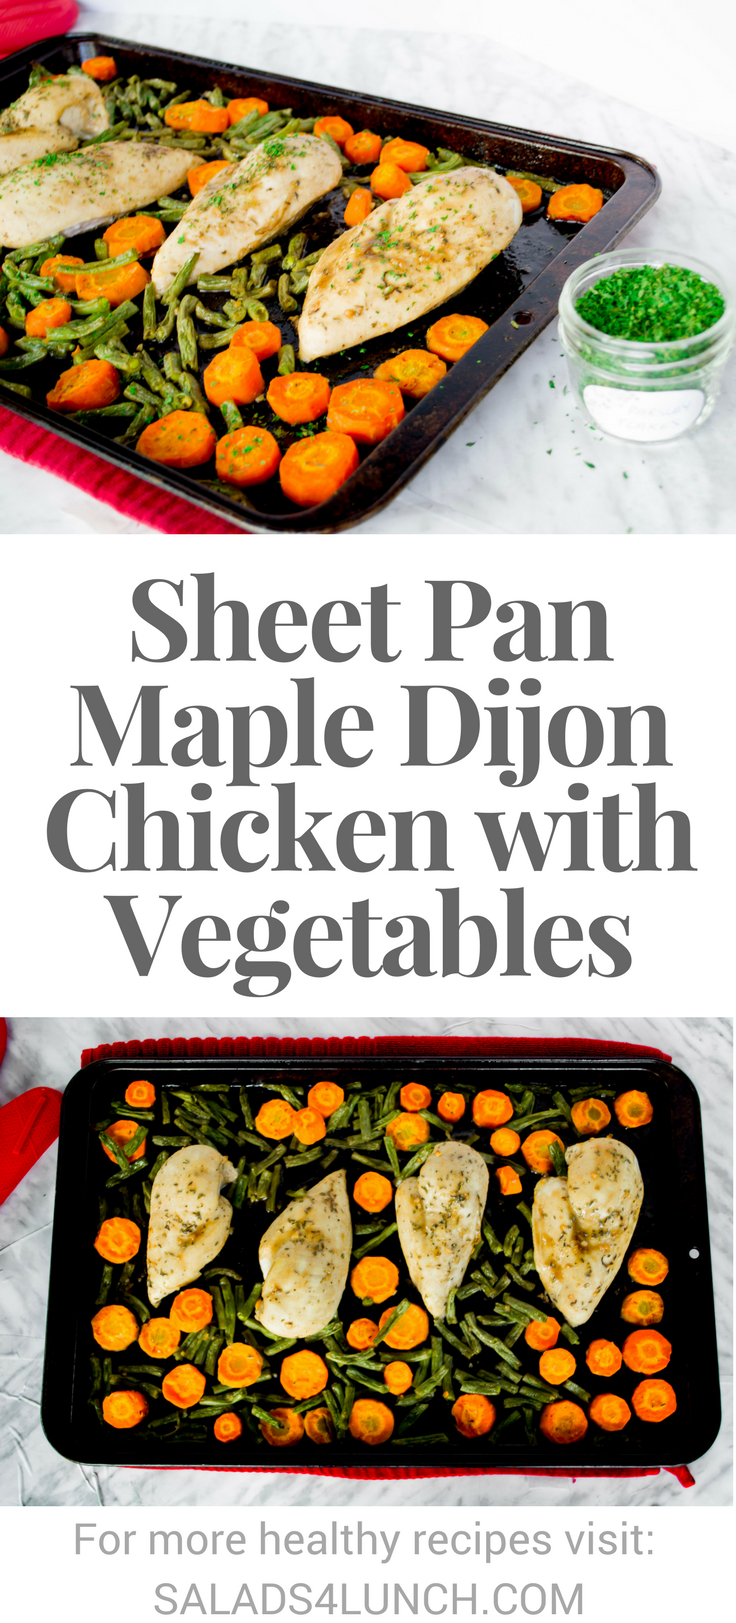 Sheet Pan Maple Dijon Chicken with Vegetables